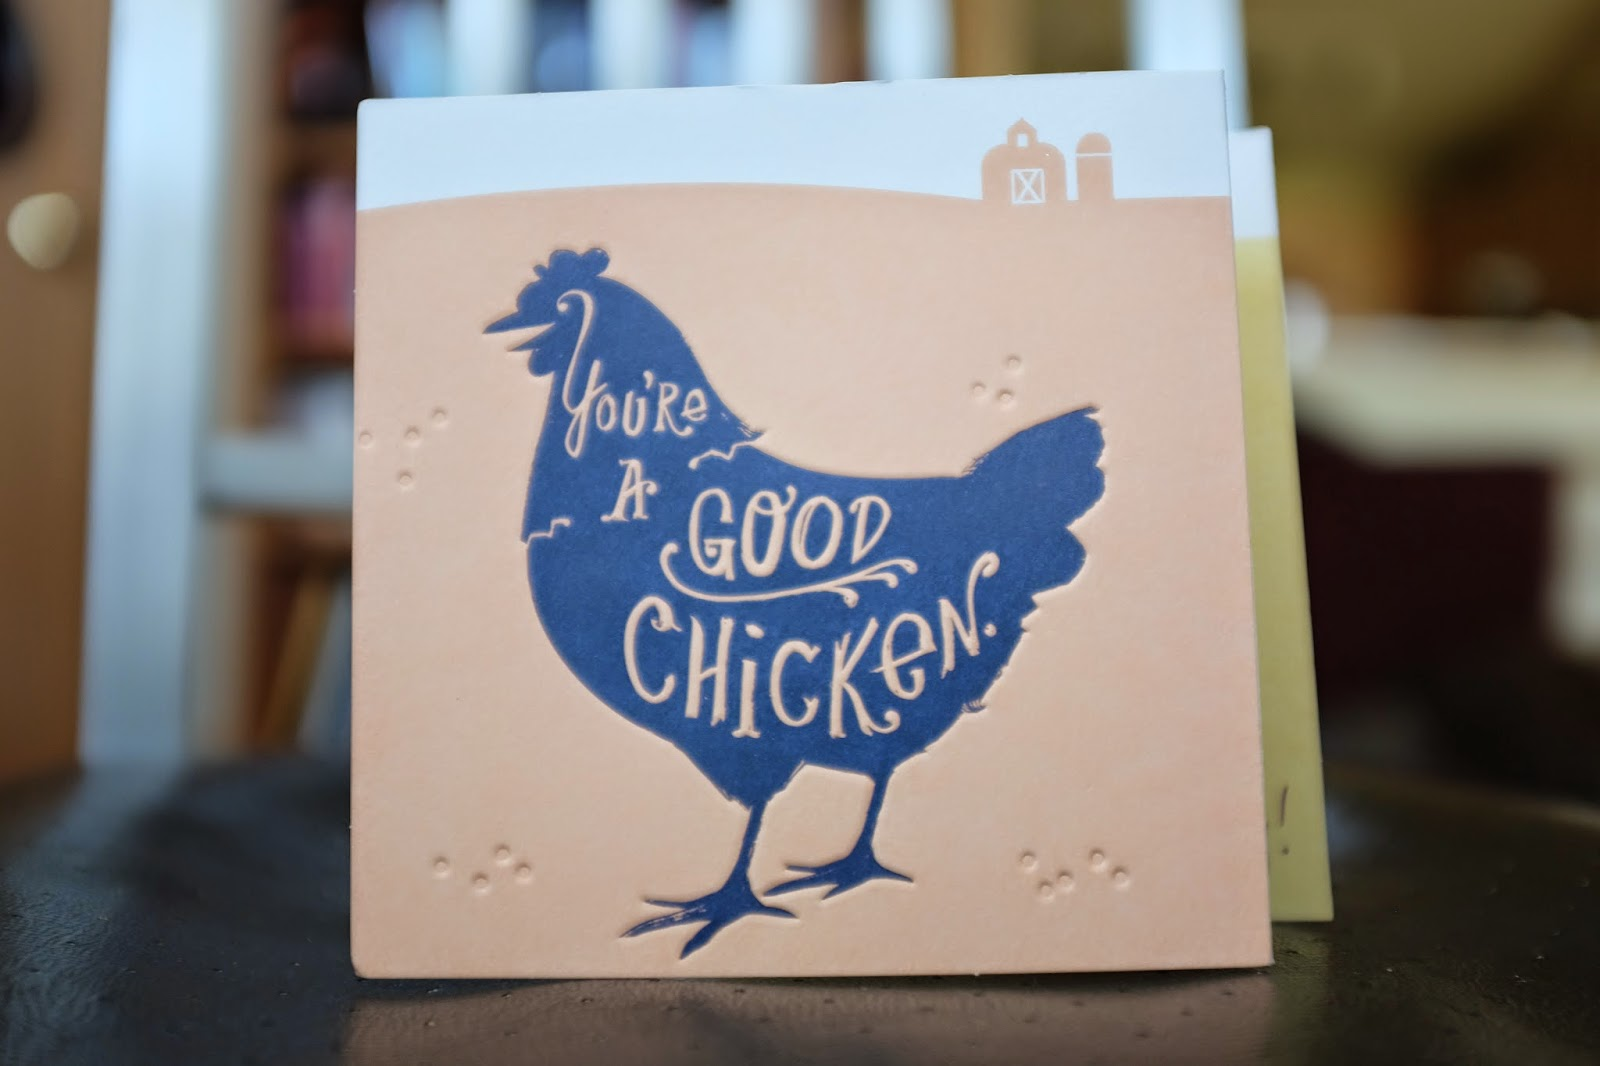 The Time for Change: 1 19 My Best Friend - You're a Good Chicken